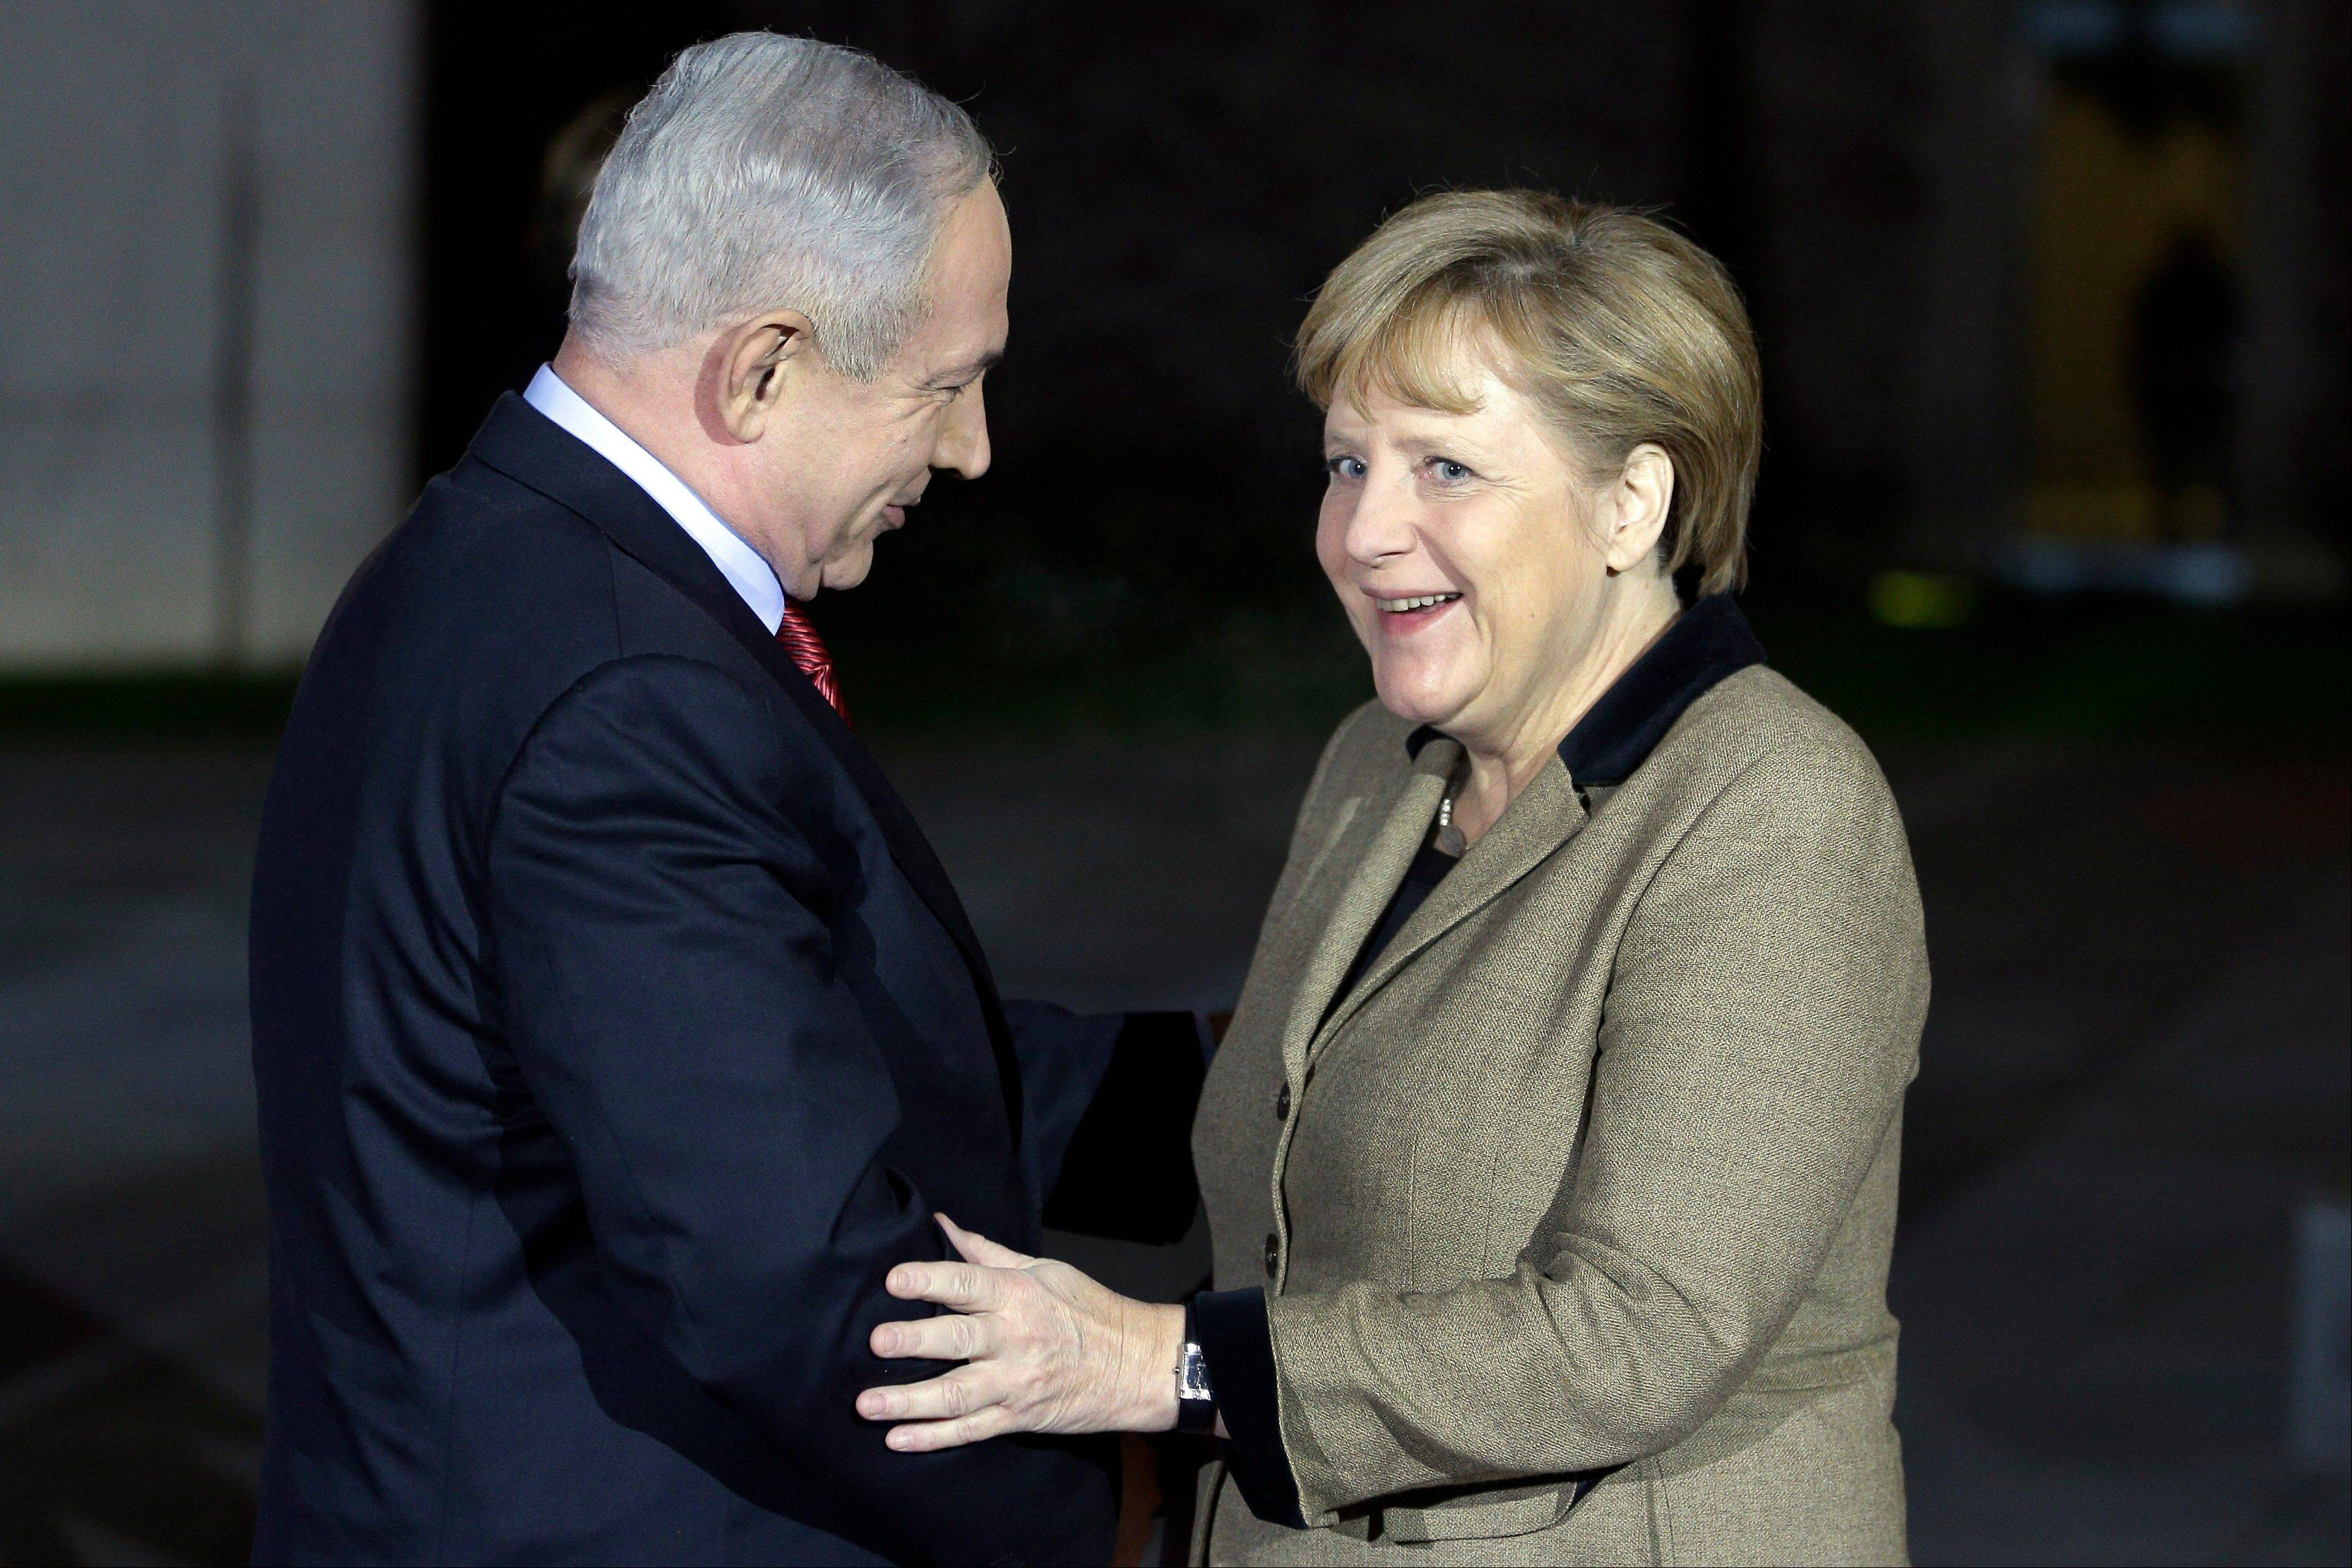 German Chancellor Angela Merkel, right, welcomes the Prime Minister of Israel, Benjamin Netanjahu, in front of the chancellery in Berlin, Germany, Wednesday for a joint dinner prior to intergovernmental talks on Thursday.